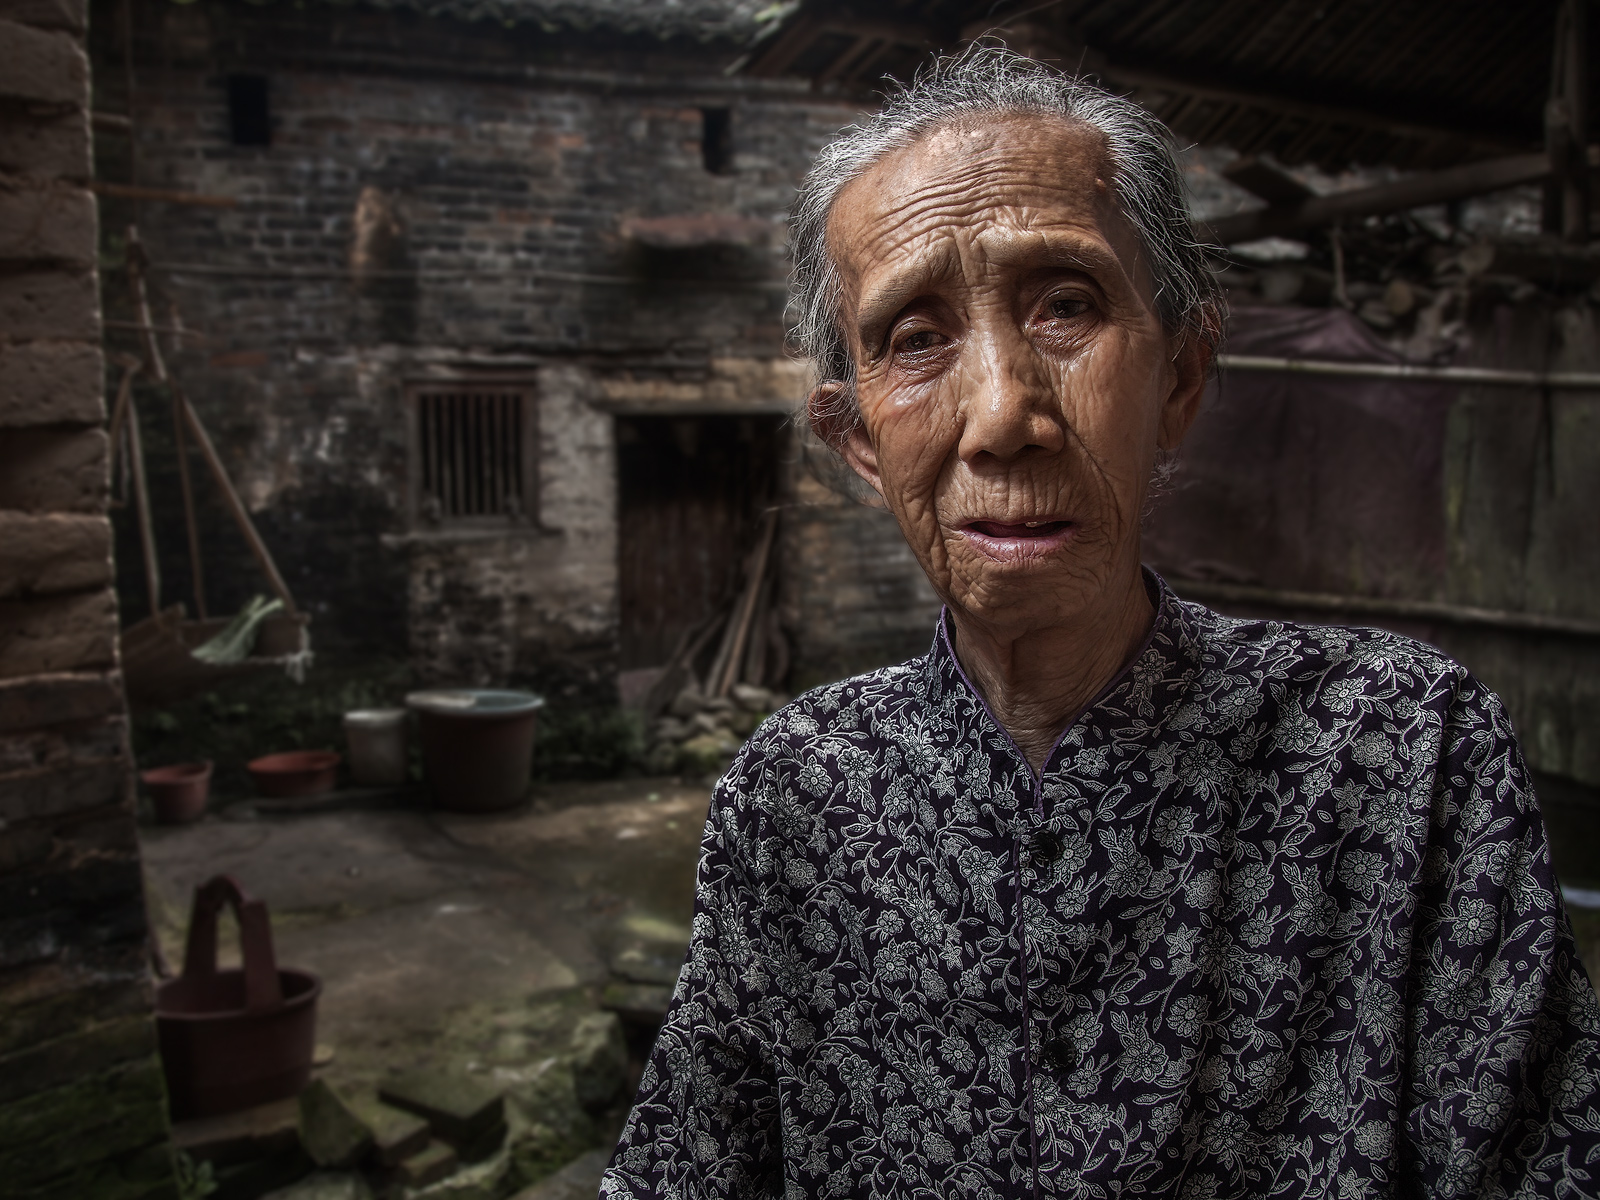 asia,asian,baisandi,baisandi village,china,chinese,elderly,environmental portait,female,flash,guilin,lady,old,older,people,portrait,woman,xing'ping,xingping, photo